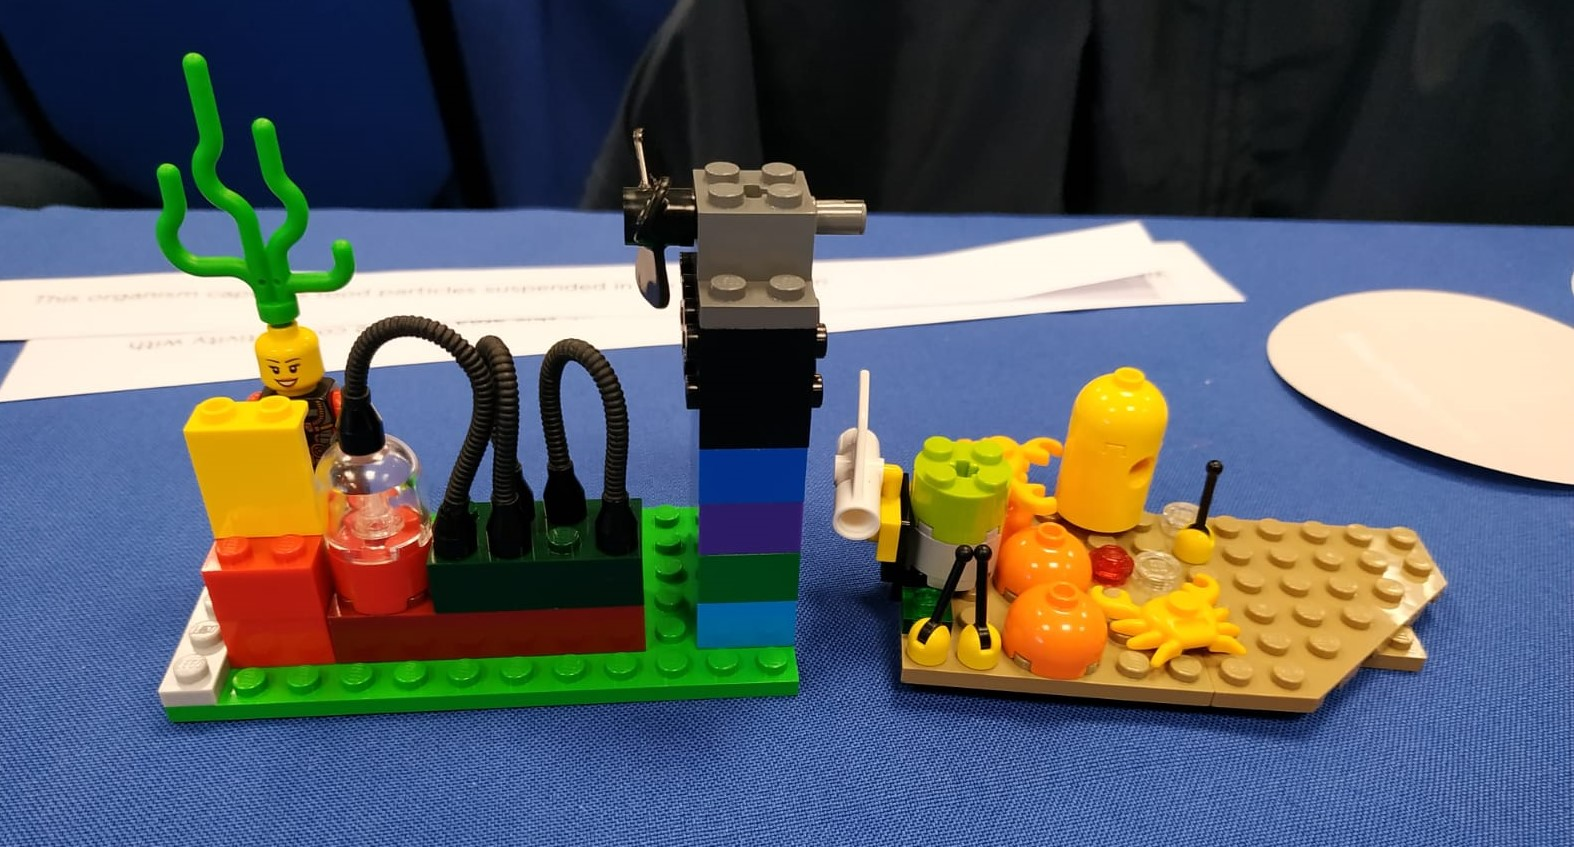 Sponge research in the lab (l) and in the field (r) illustrated with Lego © Johanne Vad